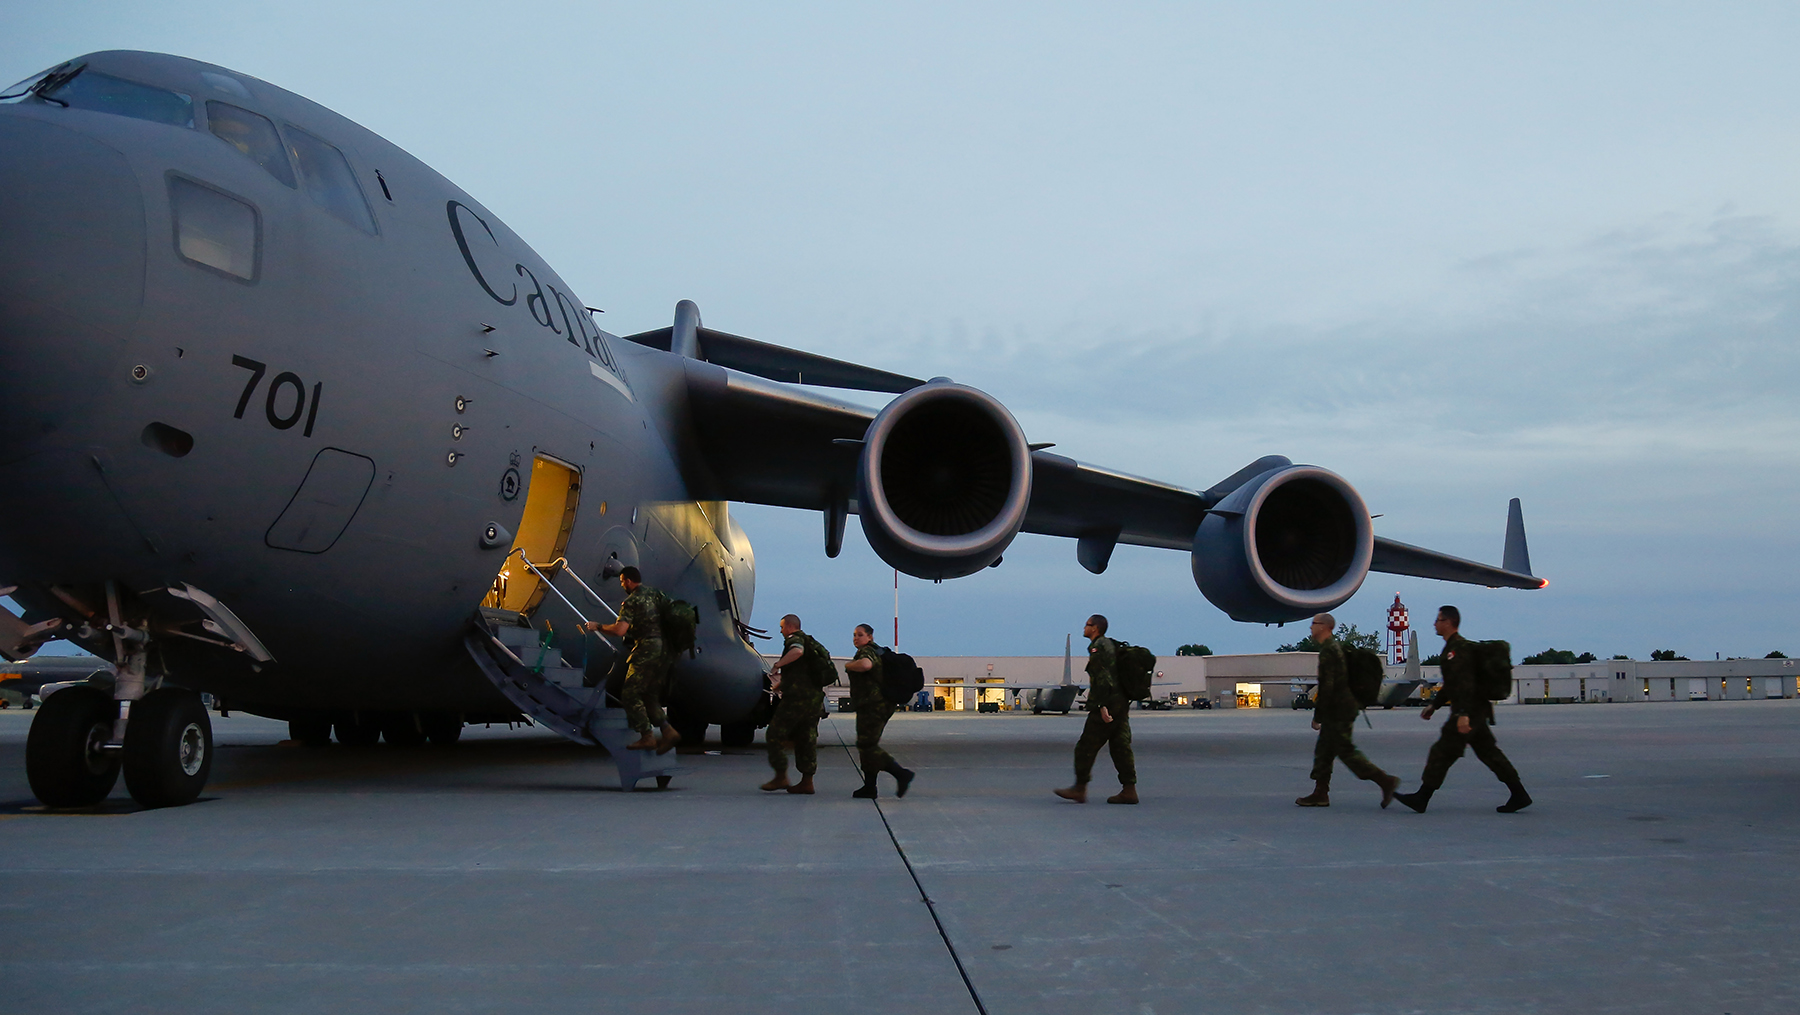 Canadian Armed Forces members board a Royal Canadian Air Force CC-177 Globemaster III aircraft bound for Whitehorse, Yukon, on August 15, 2016, to take part in Operation Nanook, the largest sovereignty operation staged in Canada's North. PHOTO: Corporal Chase Miller, SU11-2016-1061-008